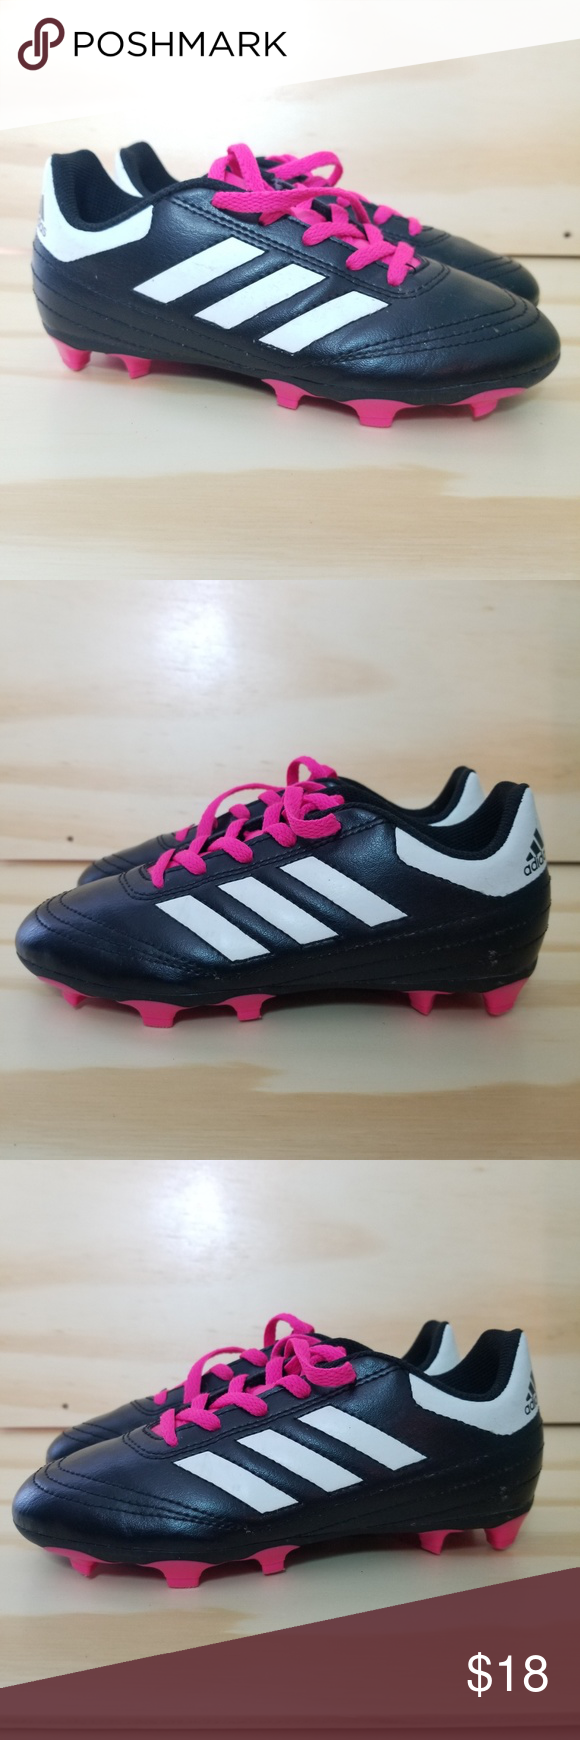 Adidas Soccer Cleats Shoes Sz 1 Adidas Soccer Cleats Shoes Girls Size 1 Youth Pink Black Laces Excellent Cond Cleats Shoes Soccer Cleats Adidas Soccer Cleats